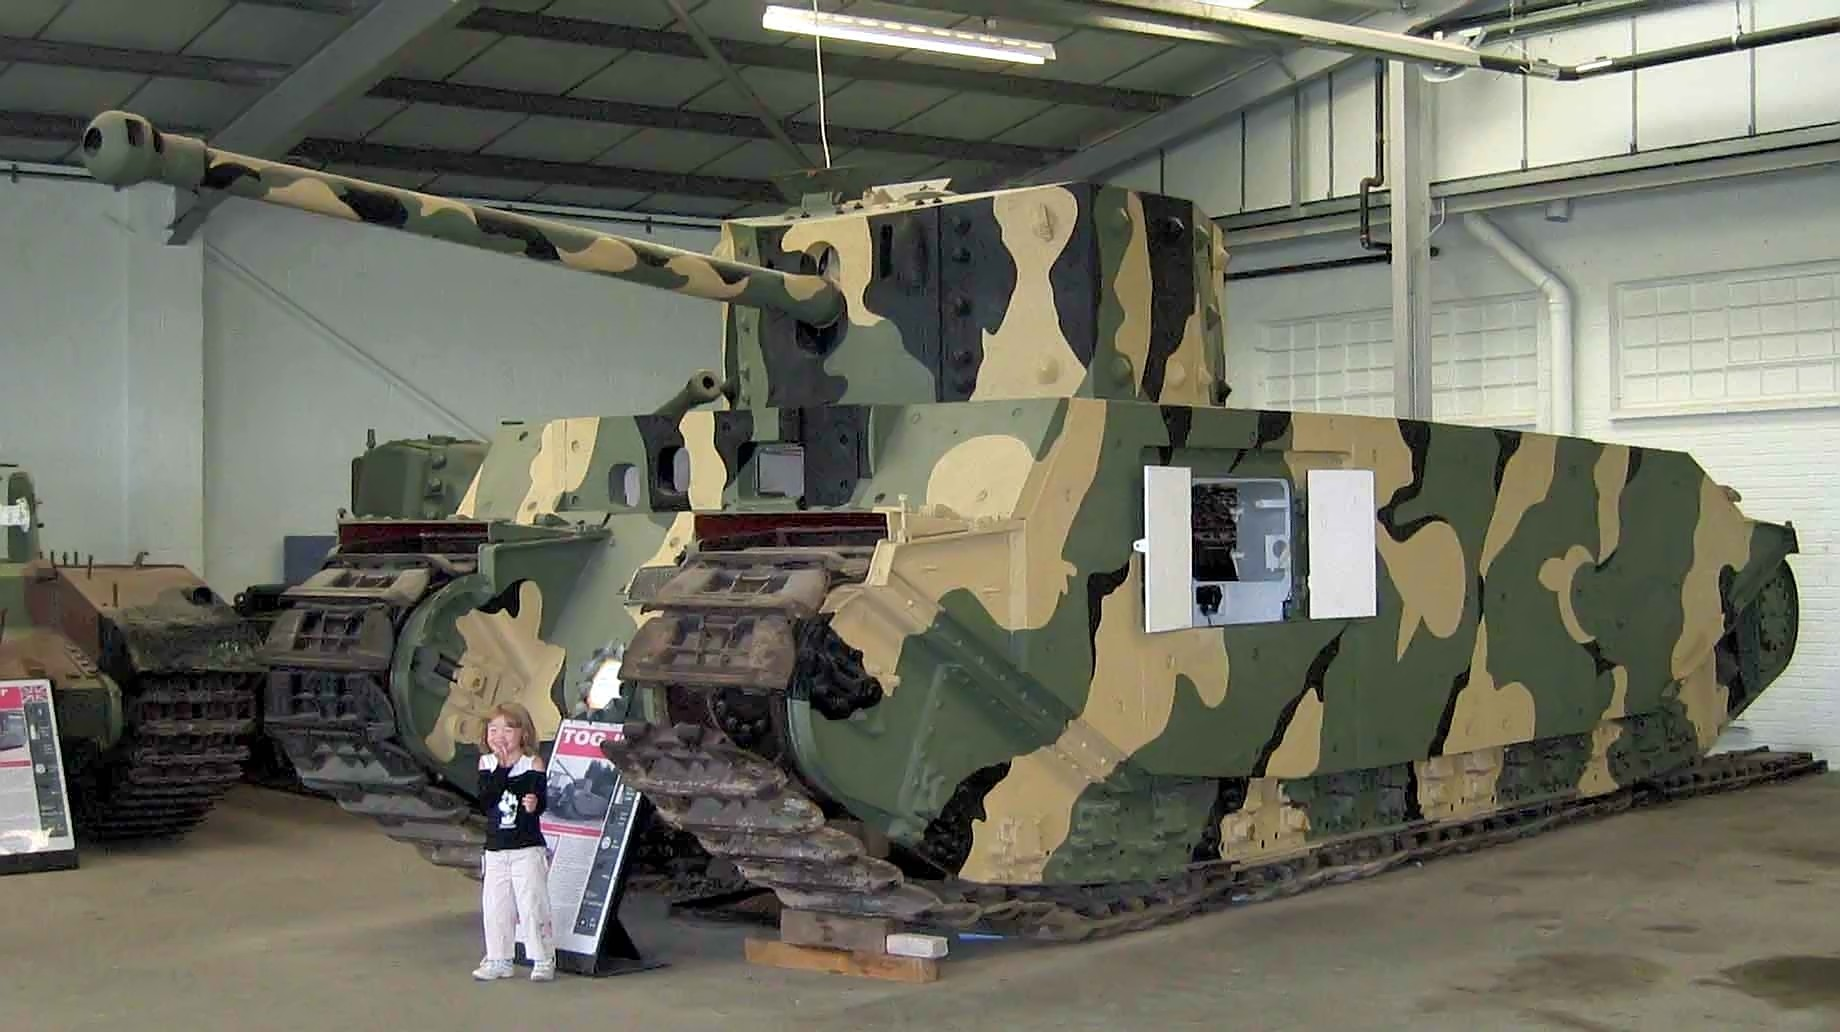 http://upload.wikimedia.org/wikipedia/commons/6/64/TOG2_Tank_Bovington.jpg